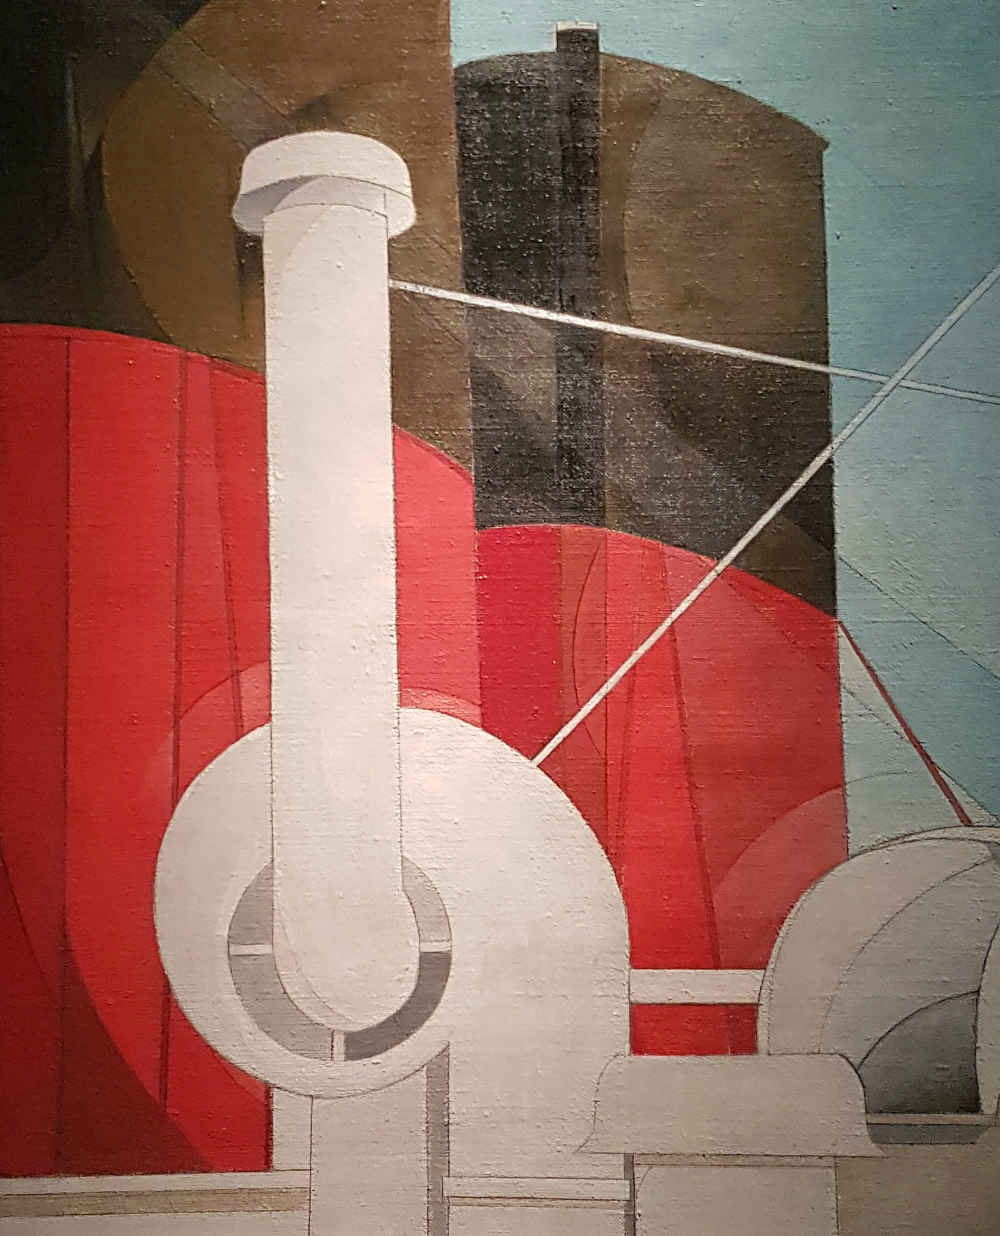 Ocean liners, Speed and Style, V&A exhibition, Titanic memorabilia, ocean liners of the past, 1920s ocean liners, exhibition review London